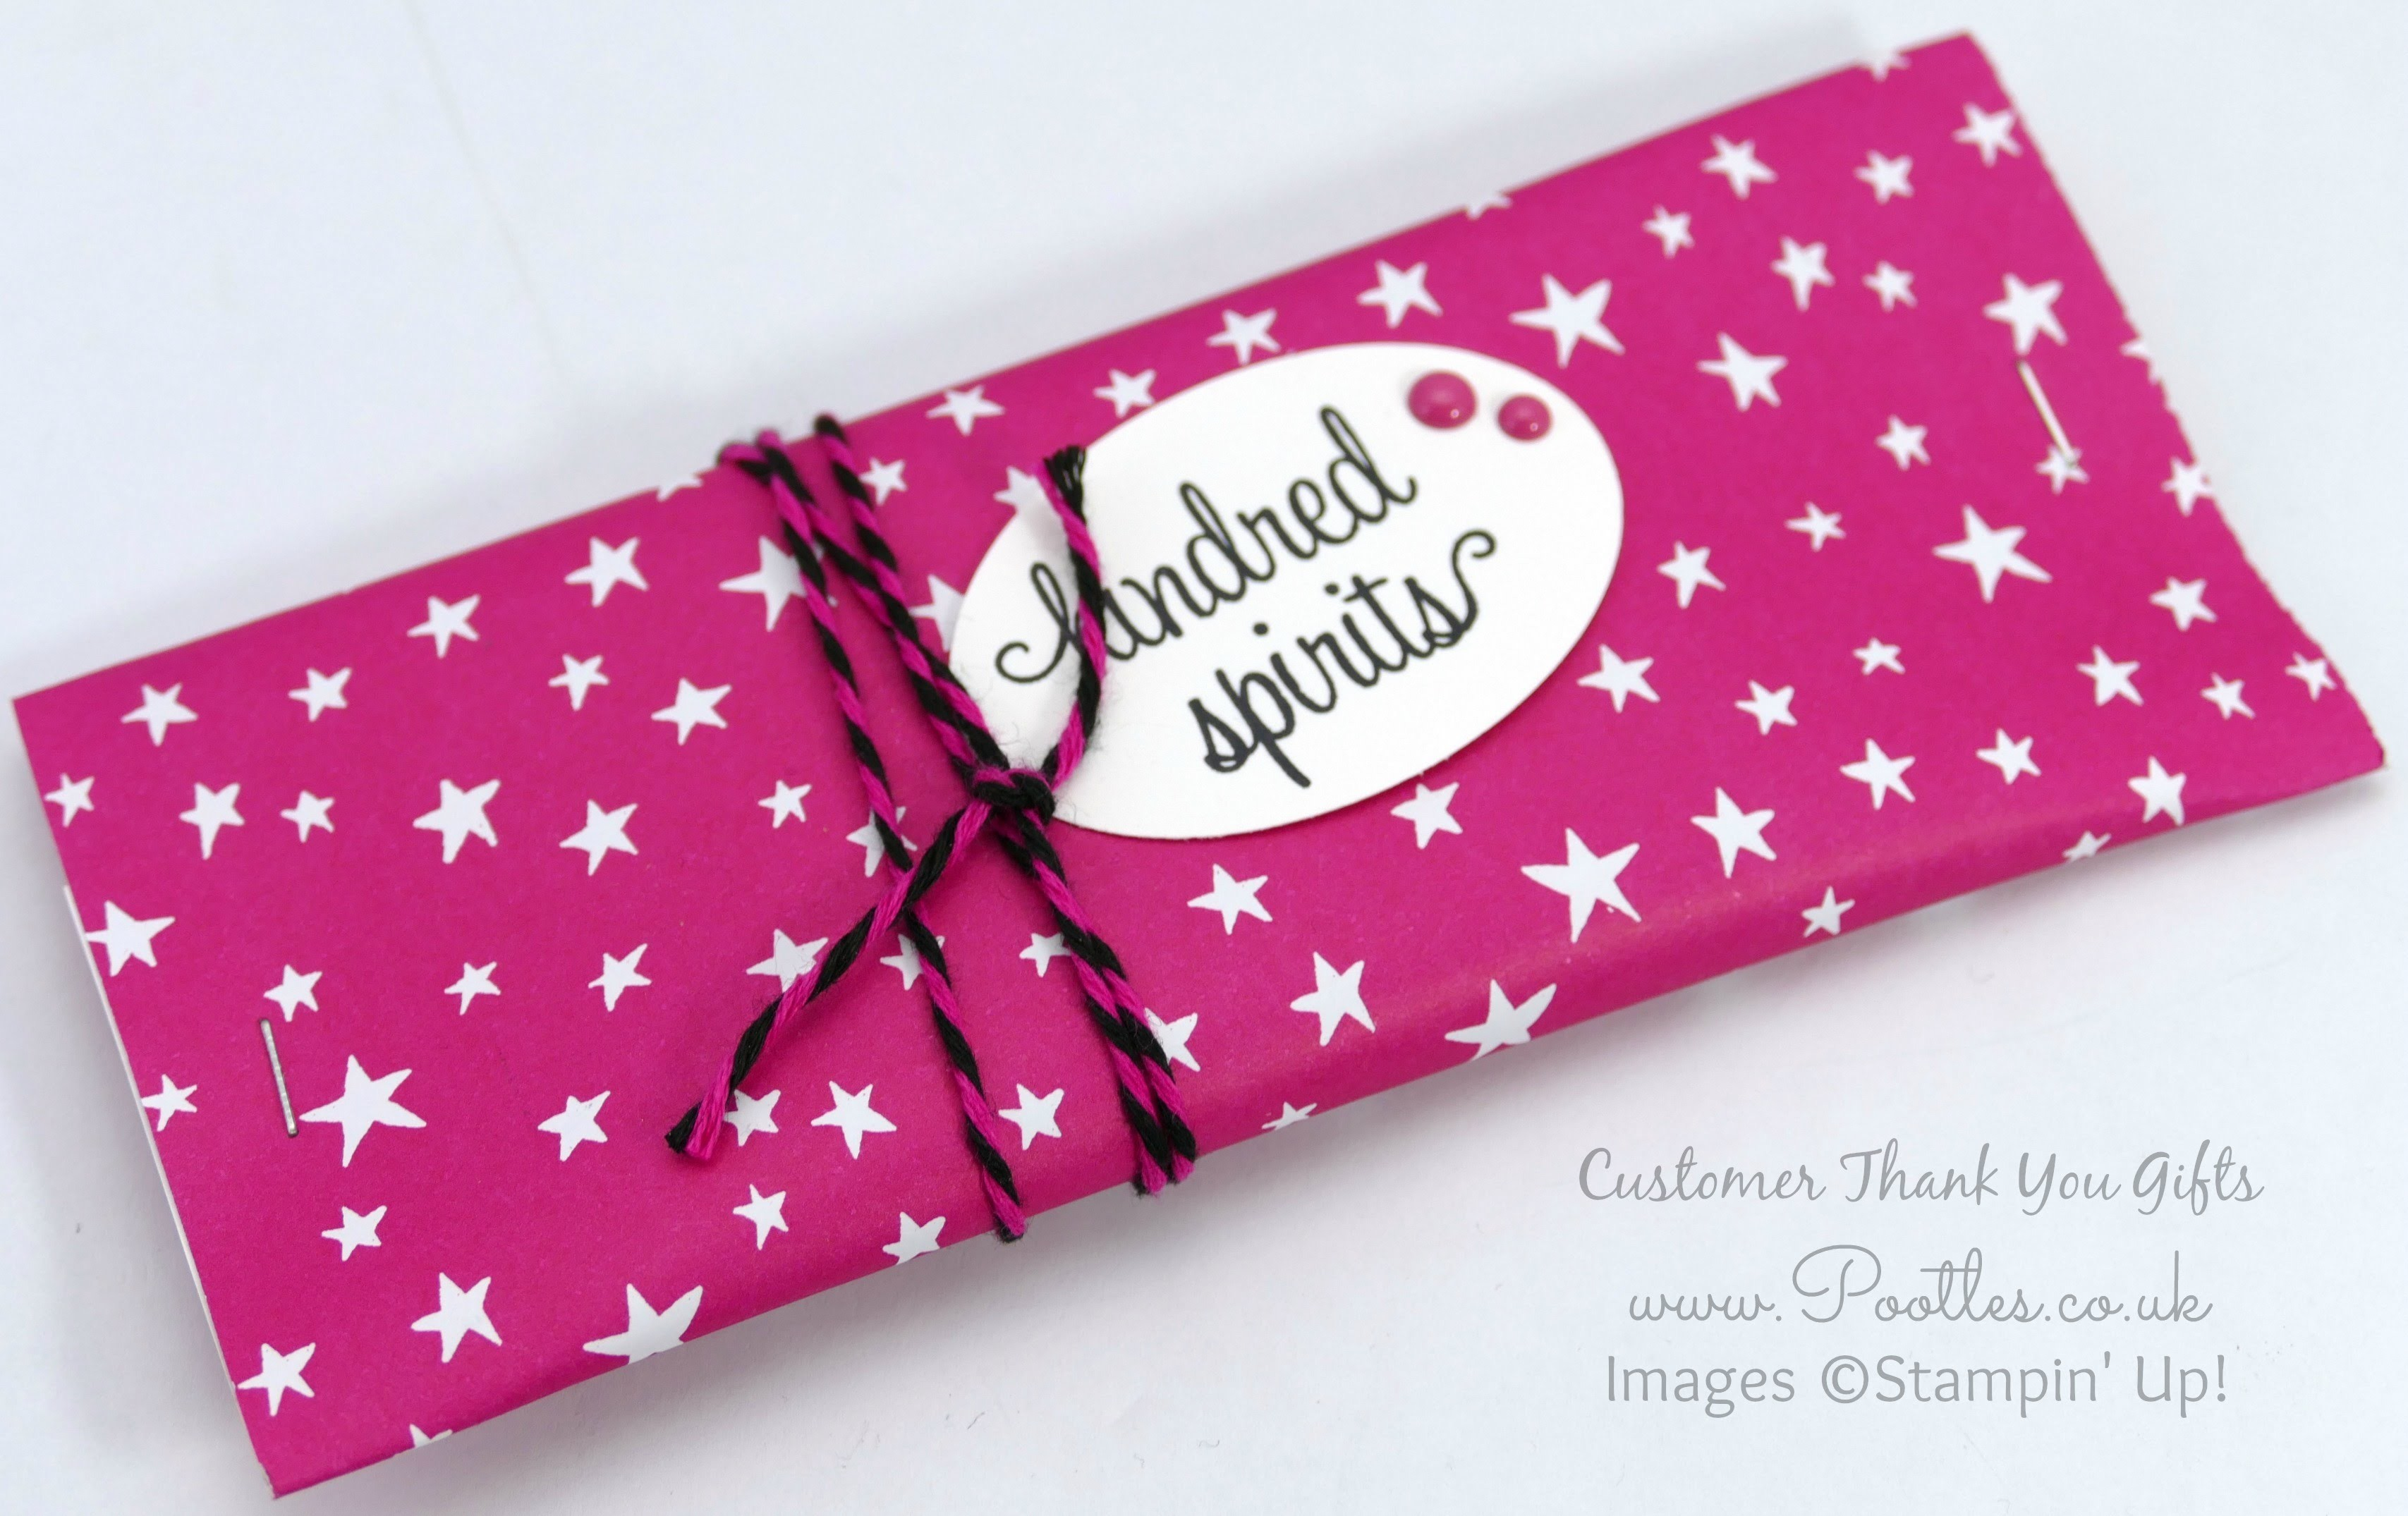 Pootles SpringWatch Customer Thank You Gift Pouches